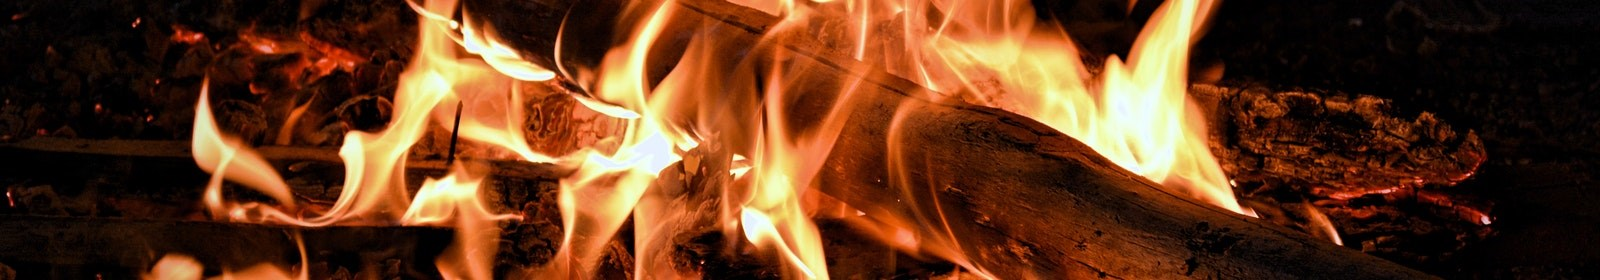 The Best Braai Wood for a Perfect Flame